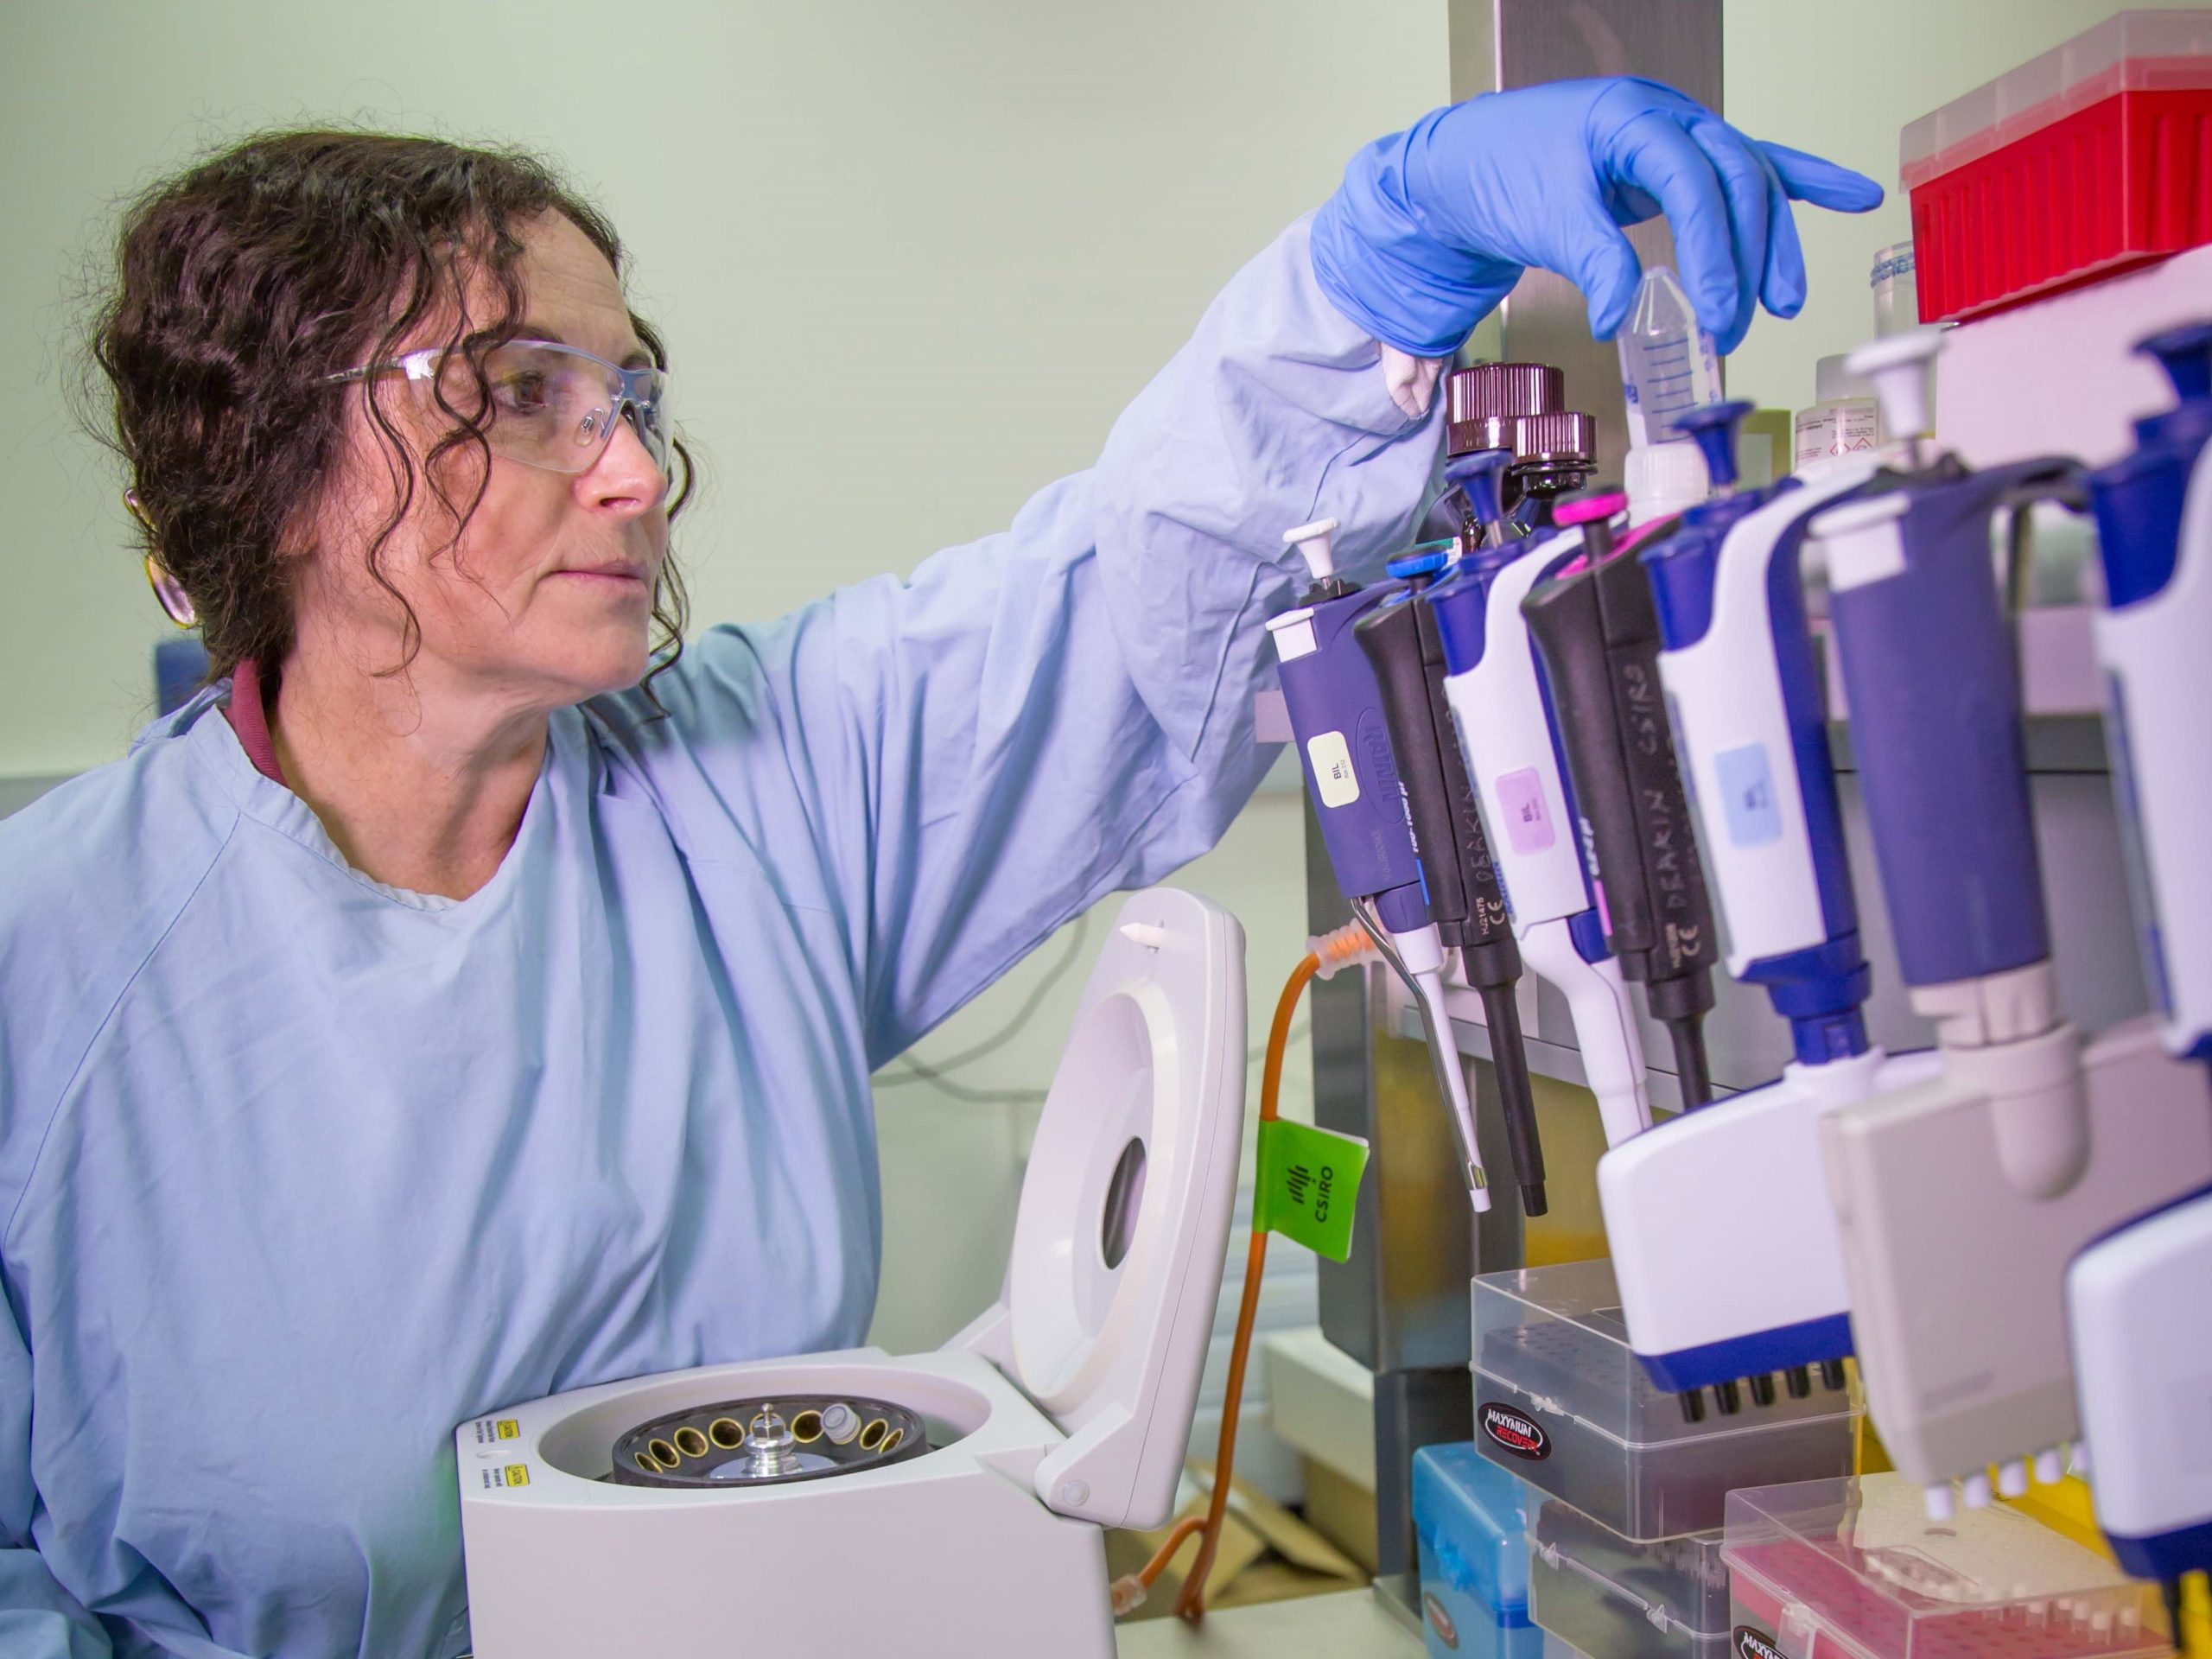 A woman in a blue lab coat working at a lab bench.